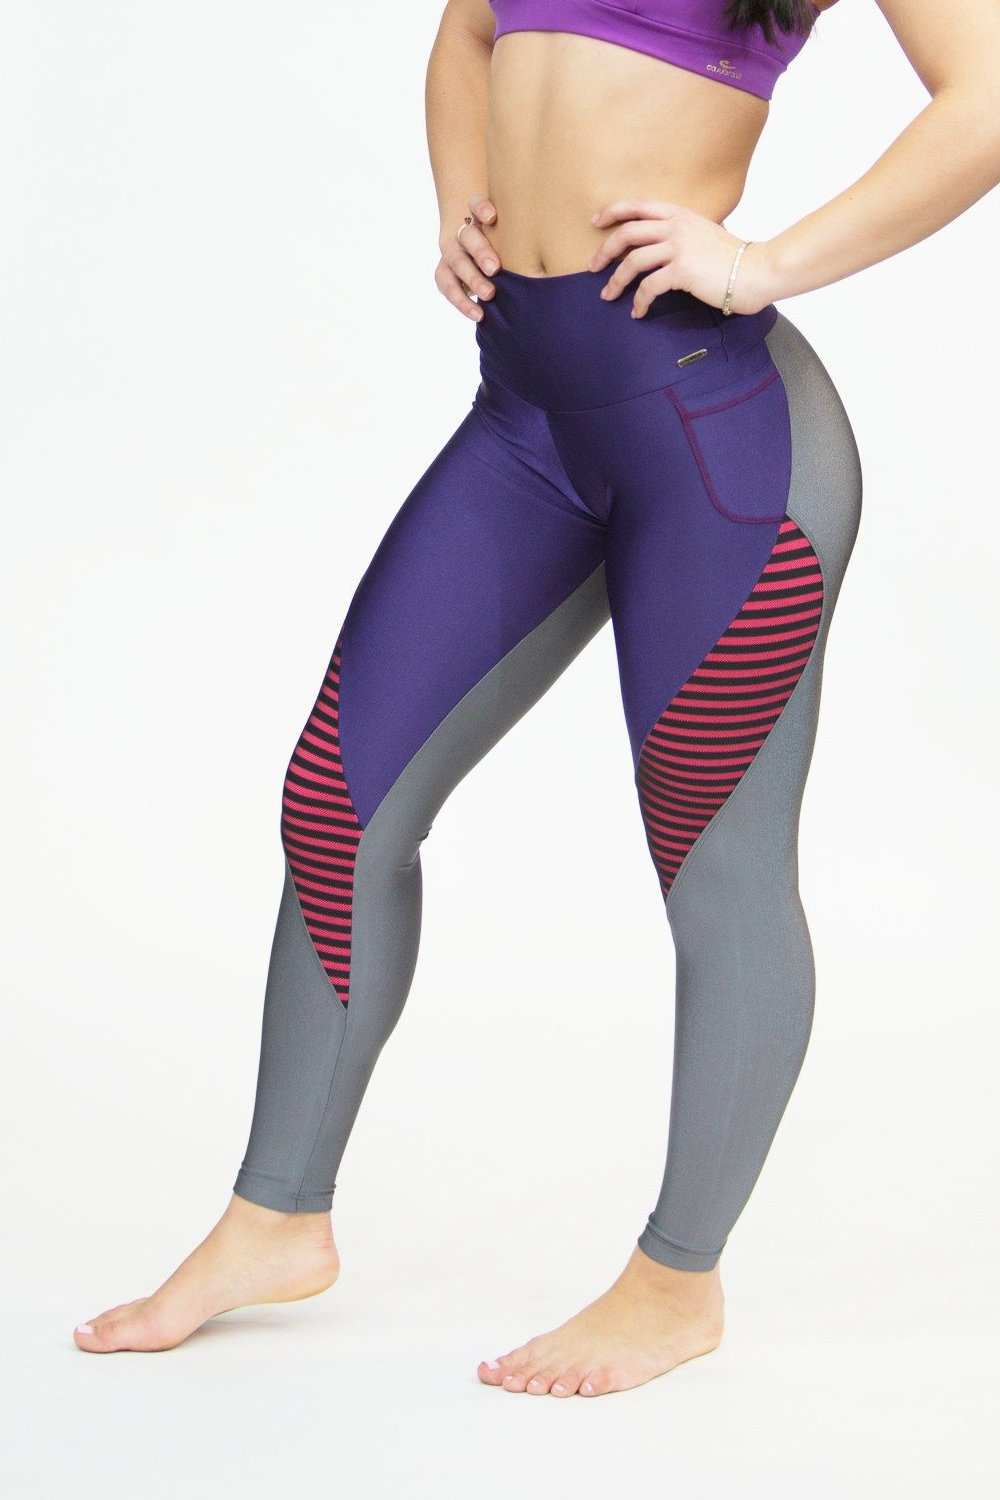 CajuBrasil USA Brazilian Fitness Leggings 7571 Purple High Compression